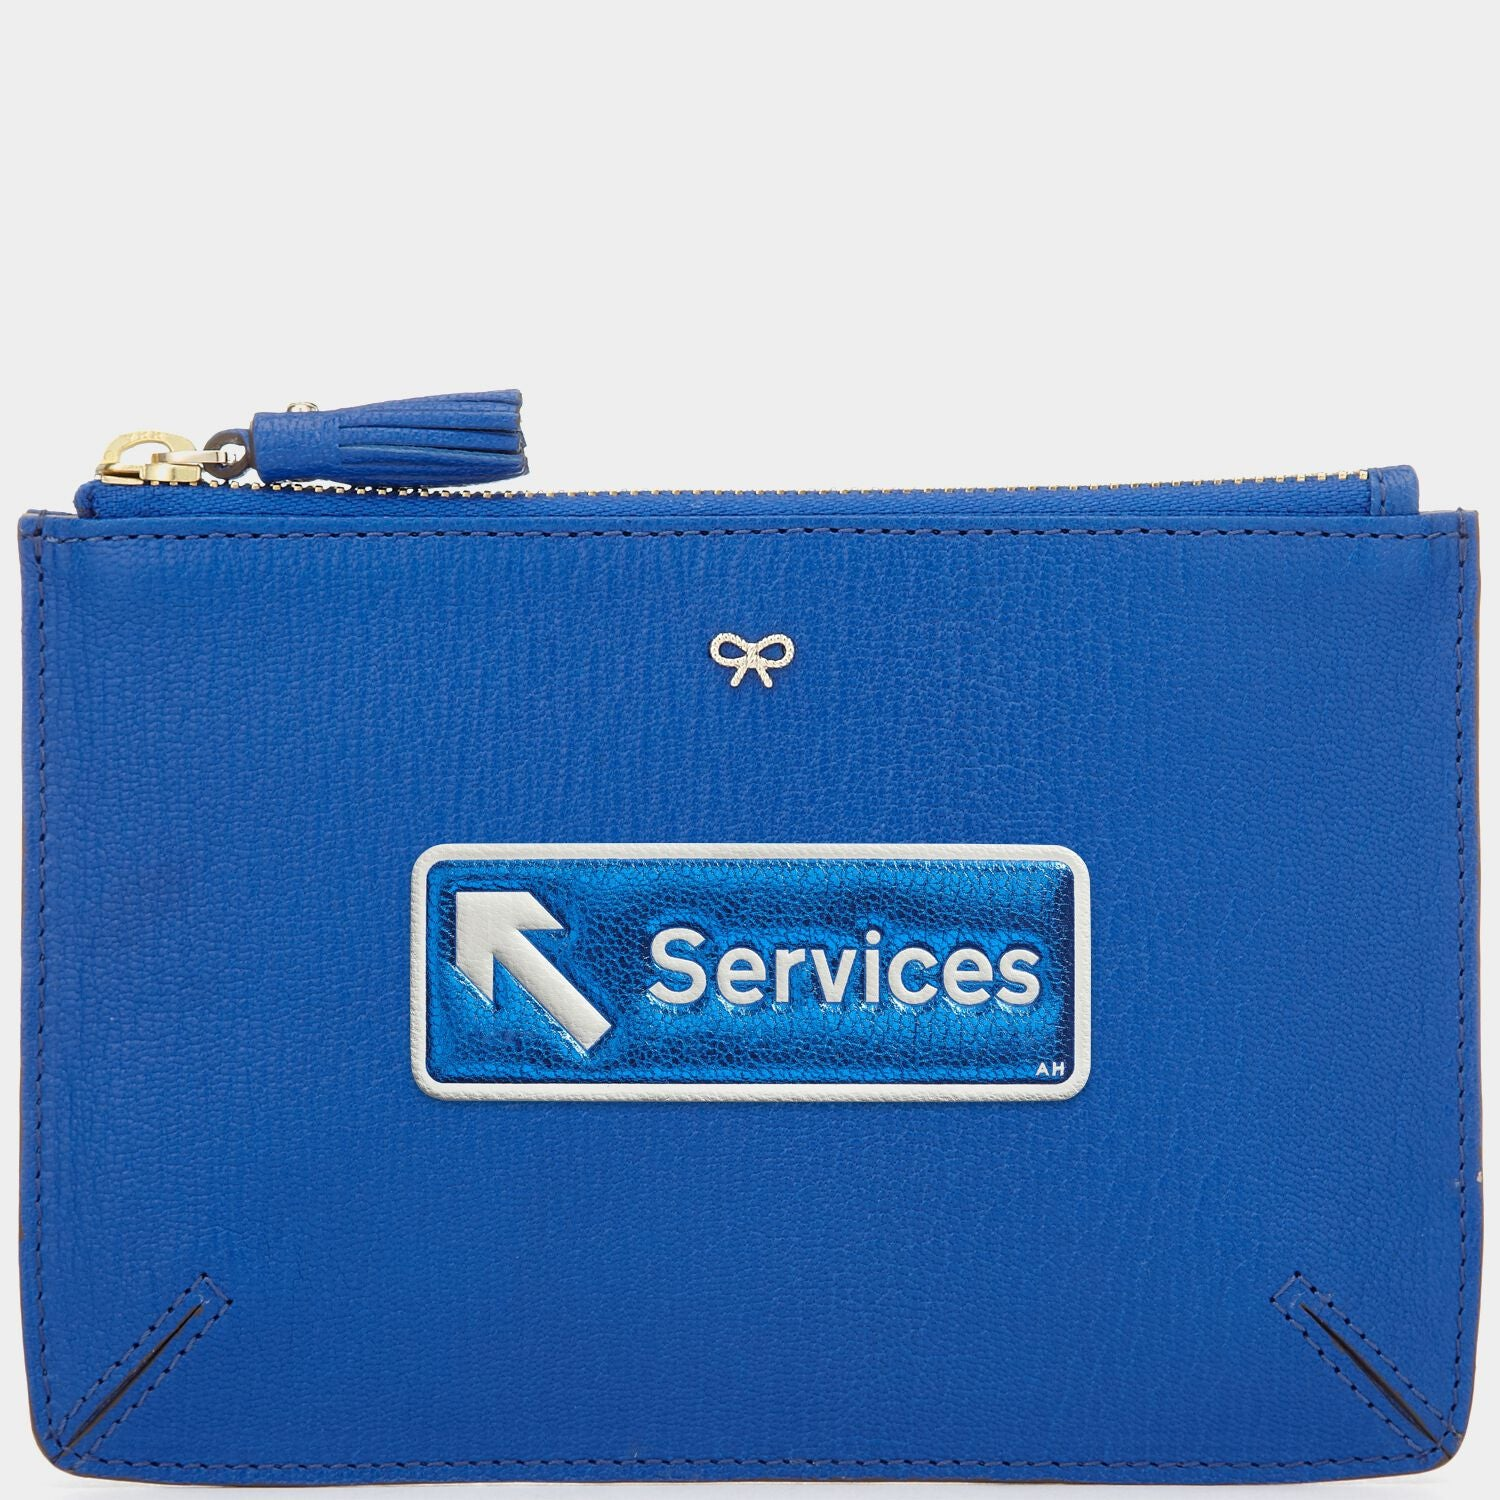 Services Leather Sticker